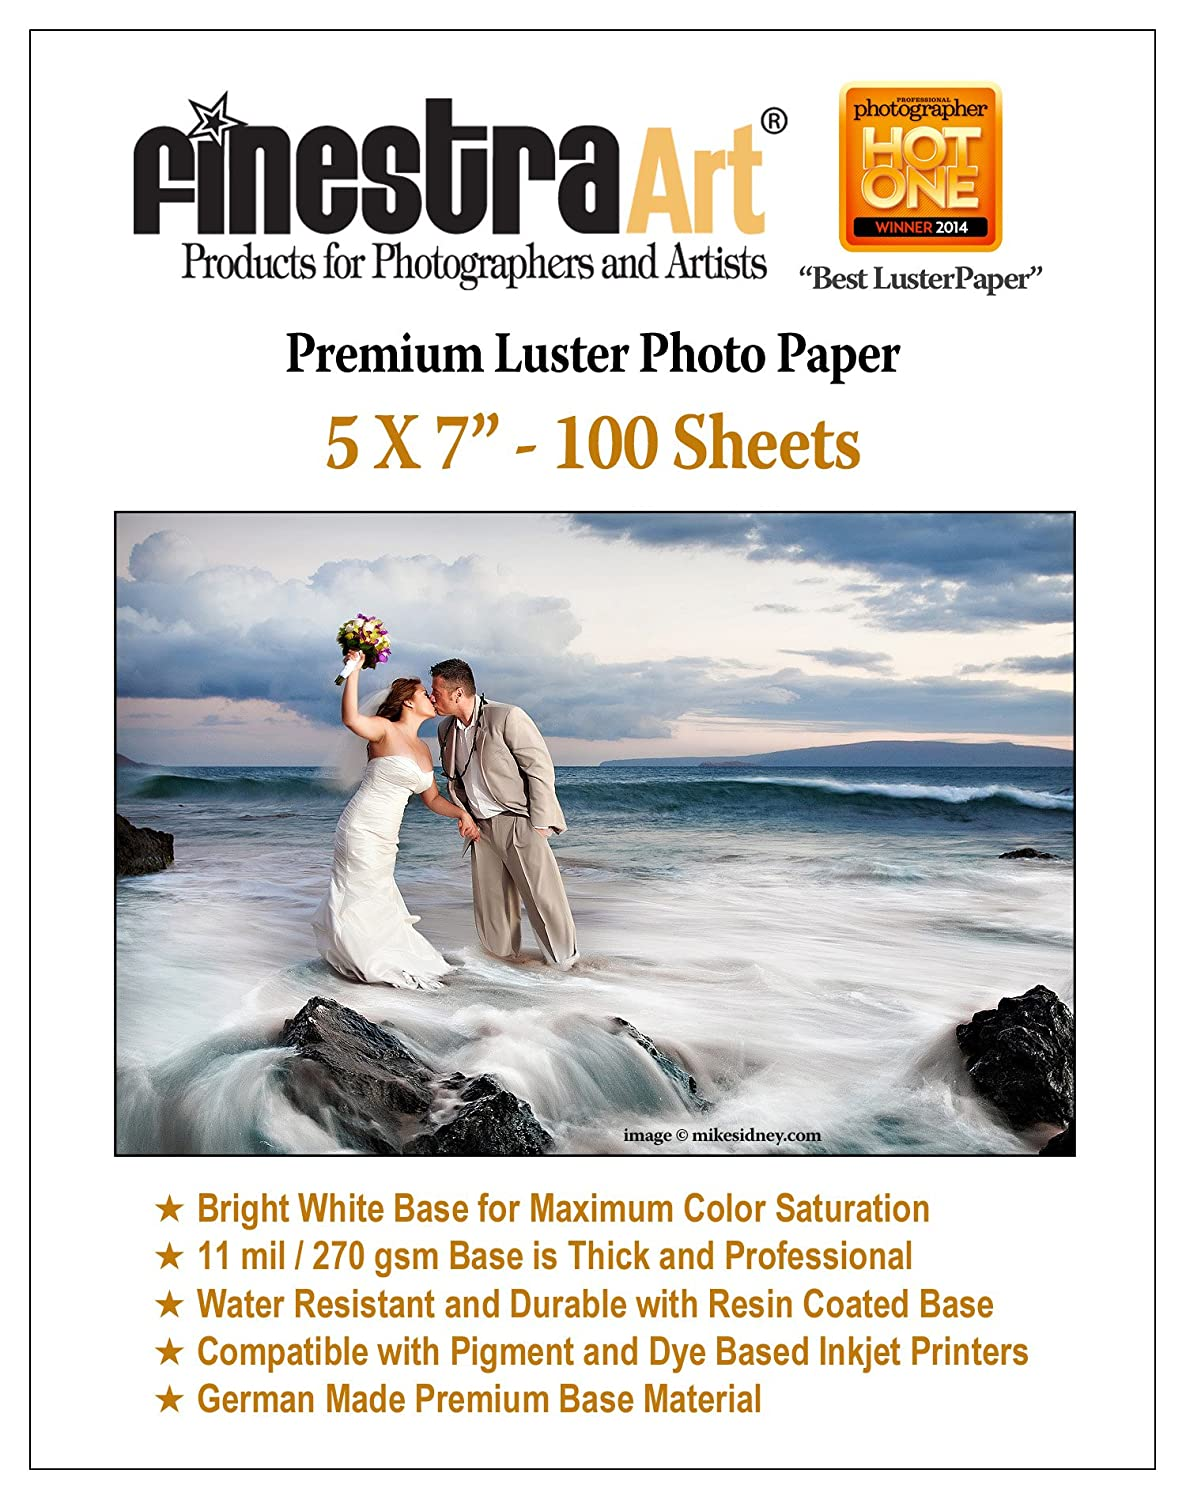 5 X 7 100 Sheets Premium Luster Photo Paper [Office Product] Finestra Art